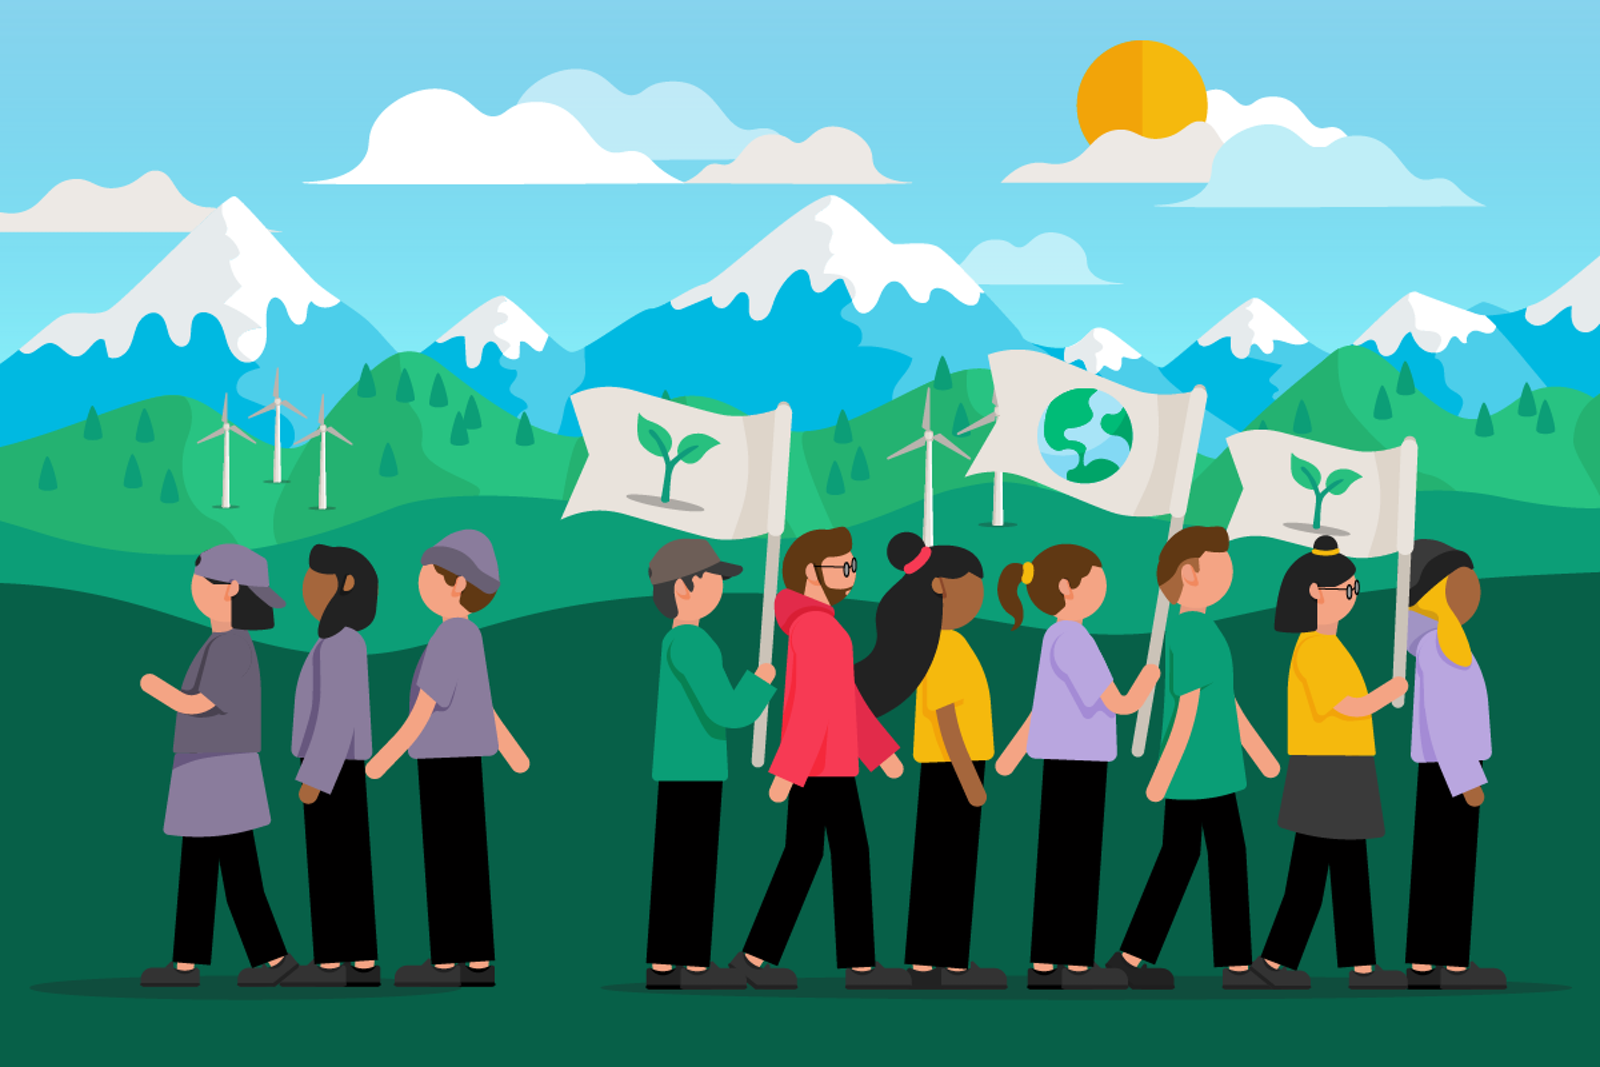 people walking holding flags with images of the earth and saplings